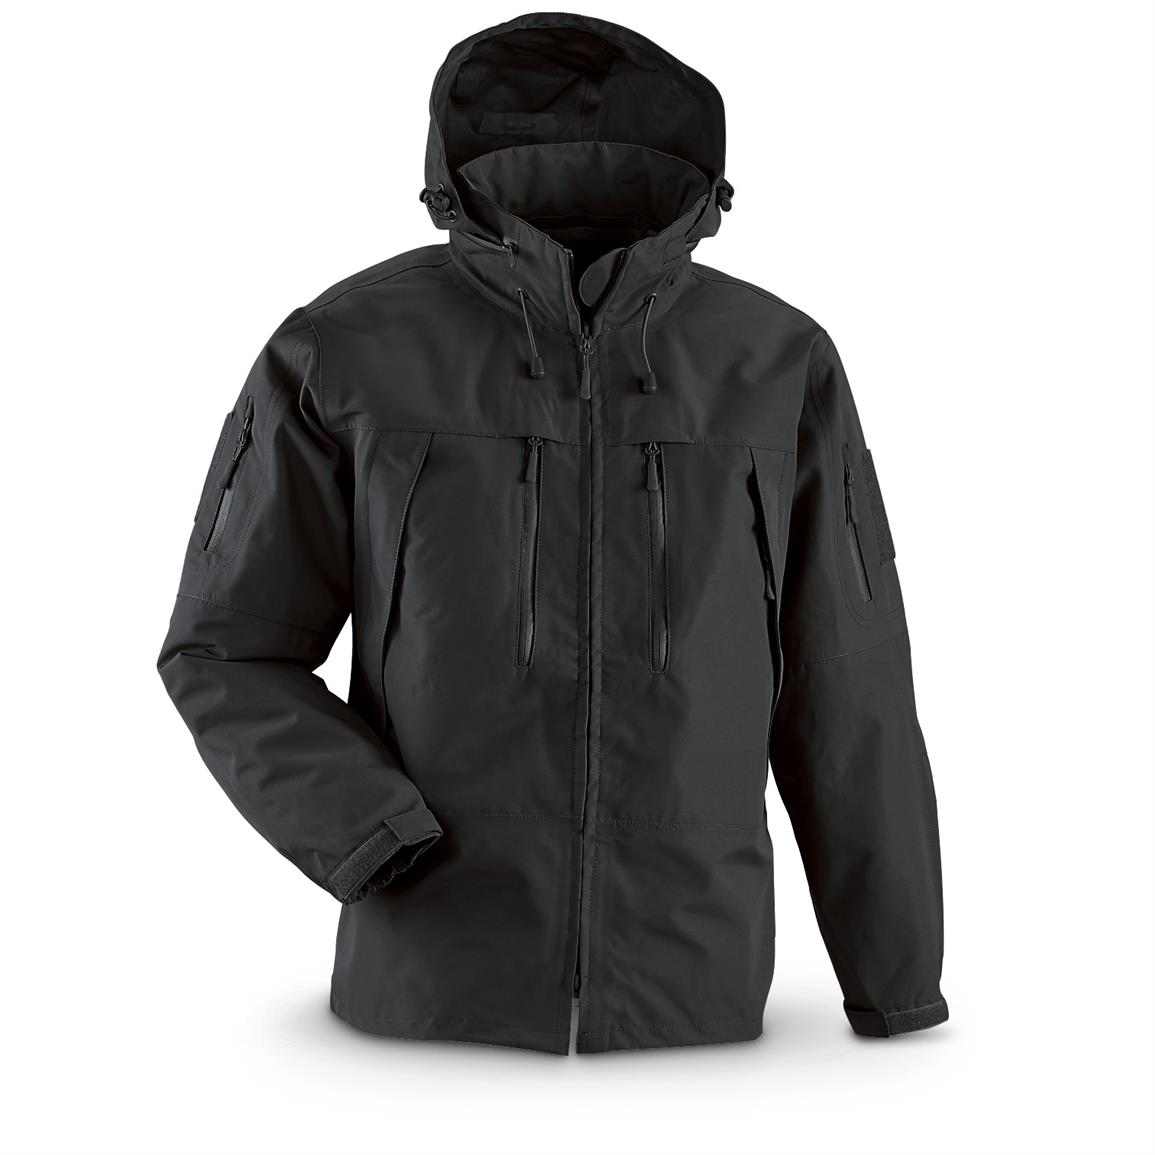 Mil-Tec Military Style Softshell Jacket, Black